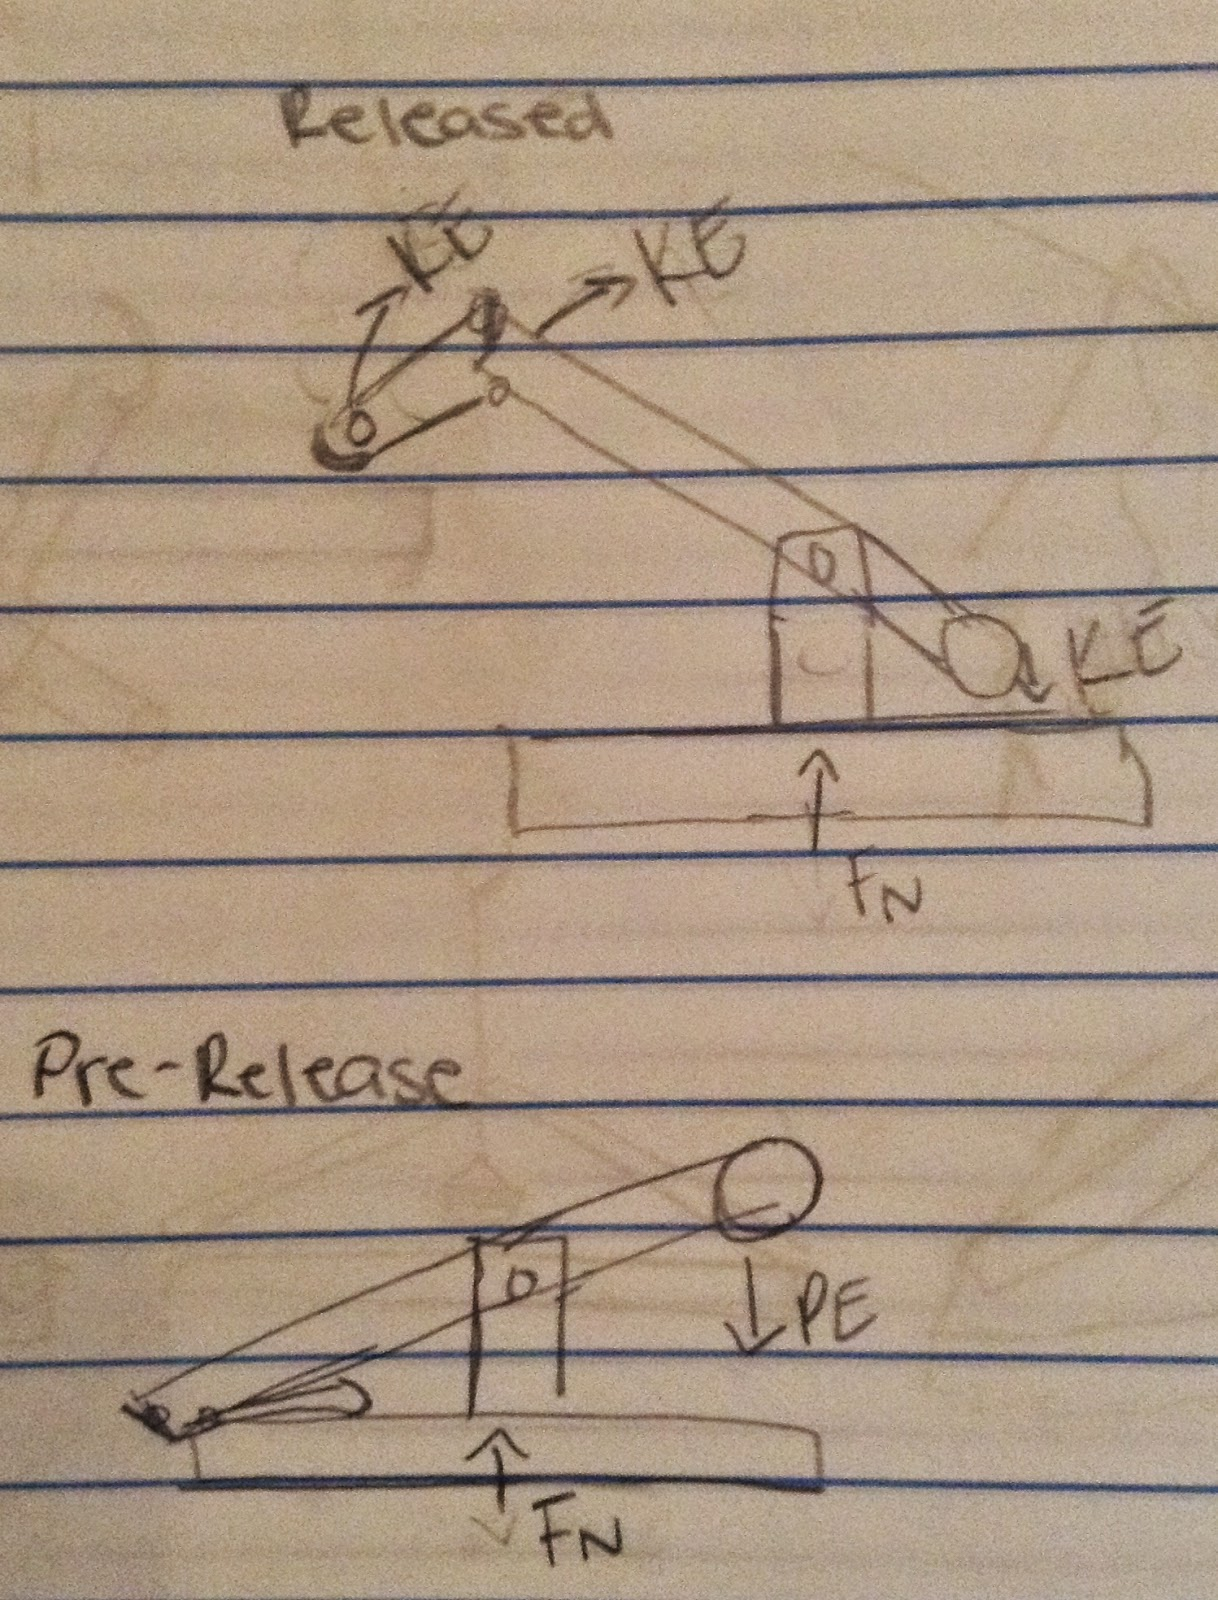 medium resolution of before launch the trebuchet arm has potential energy pe after the trebuchet arm is released it has kinetic energy ke and the arm and trebuchet